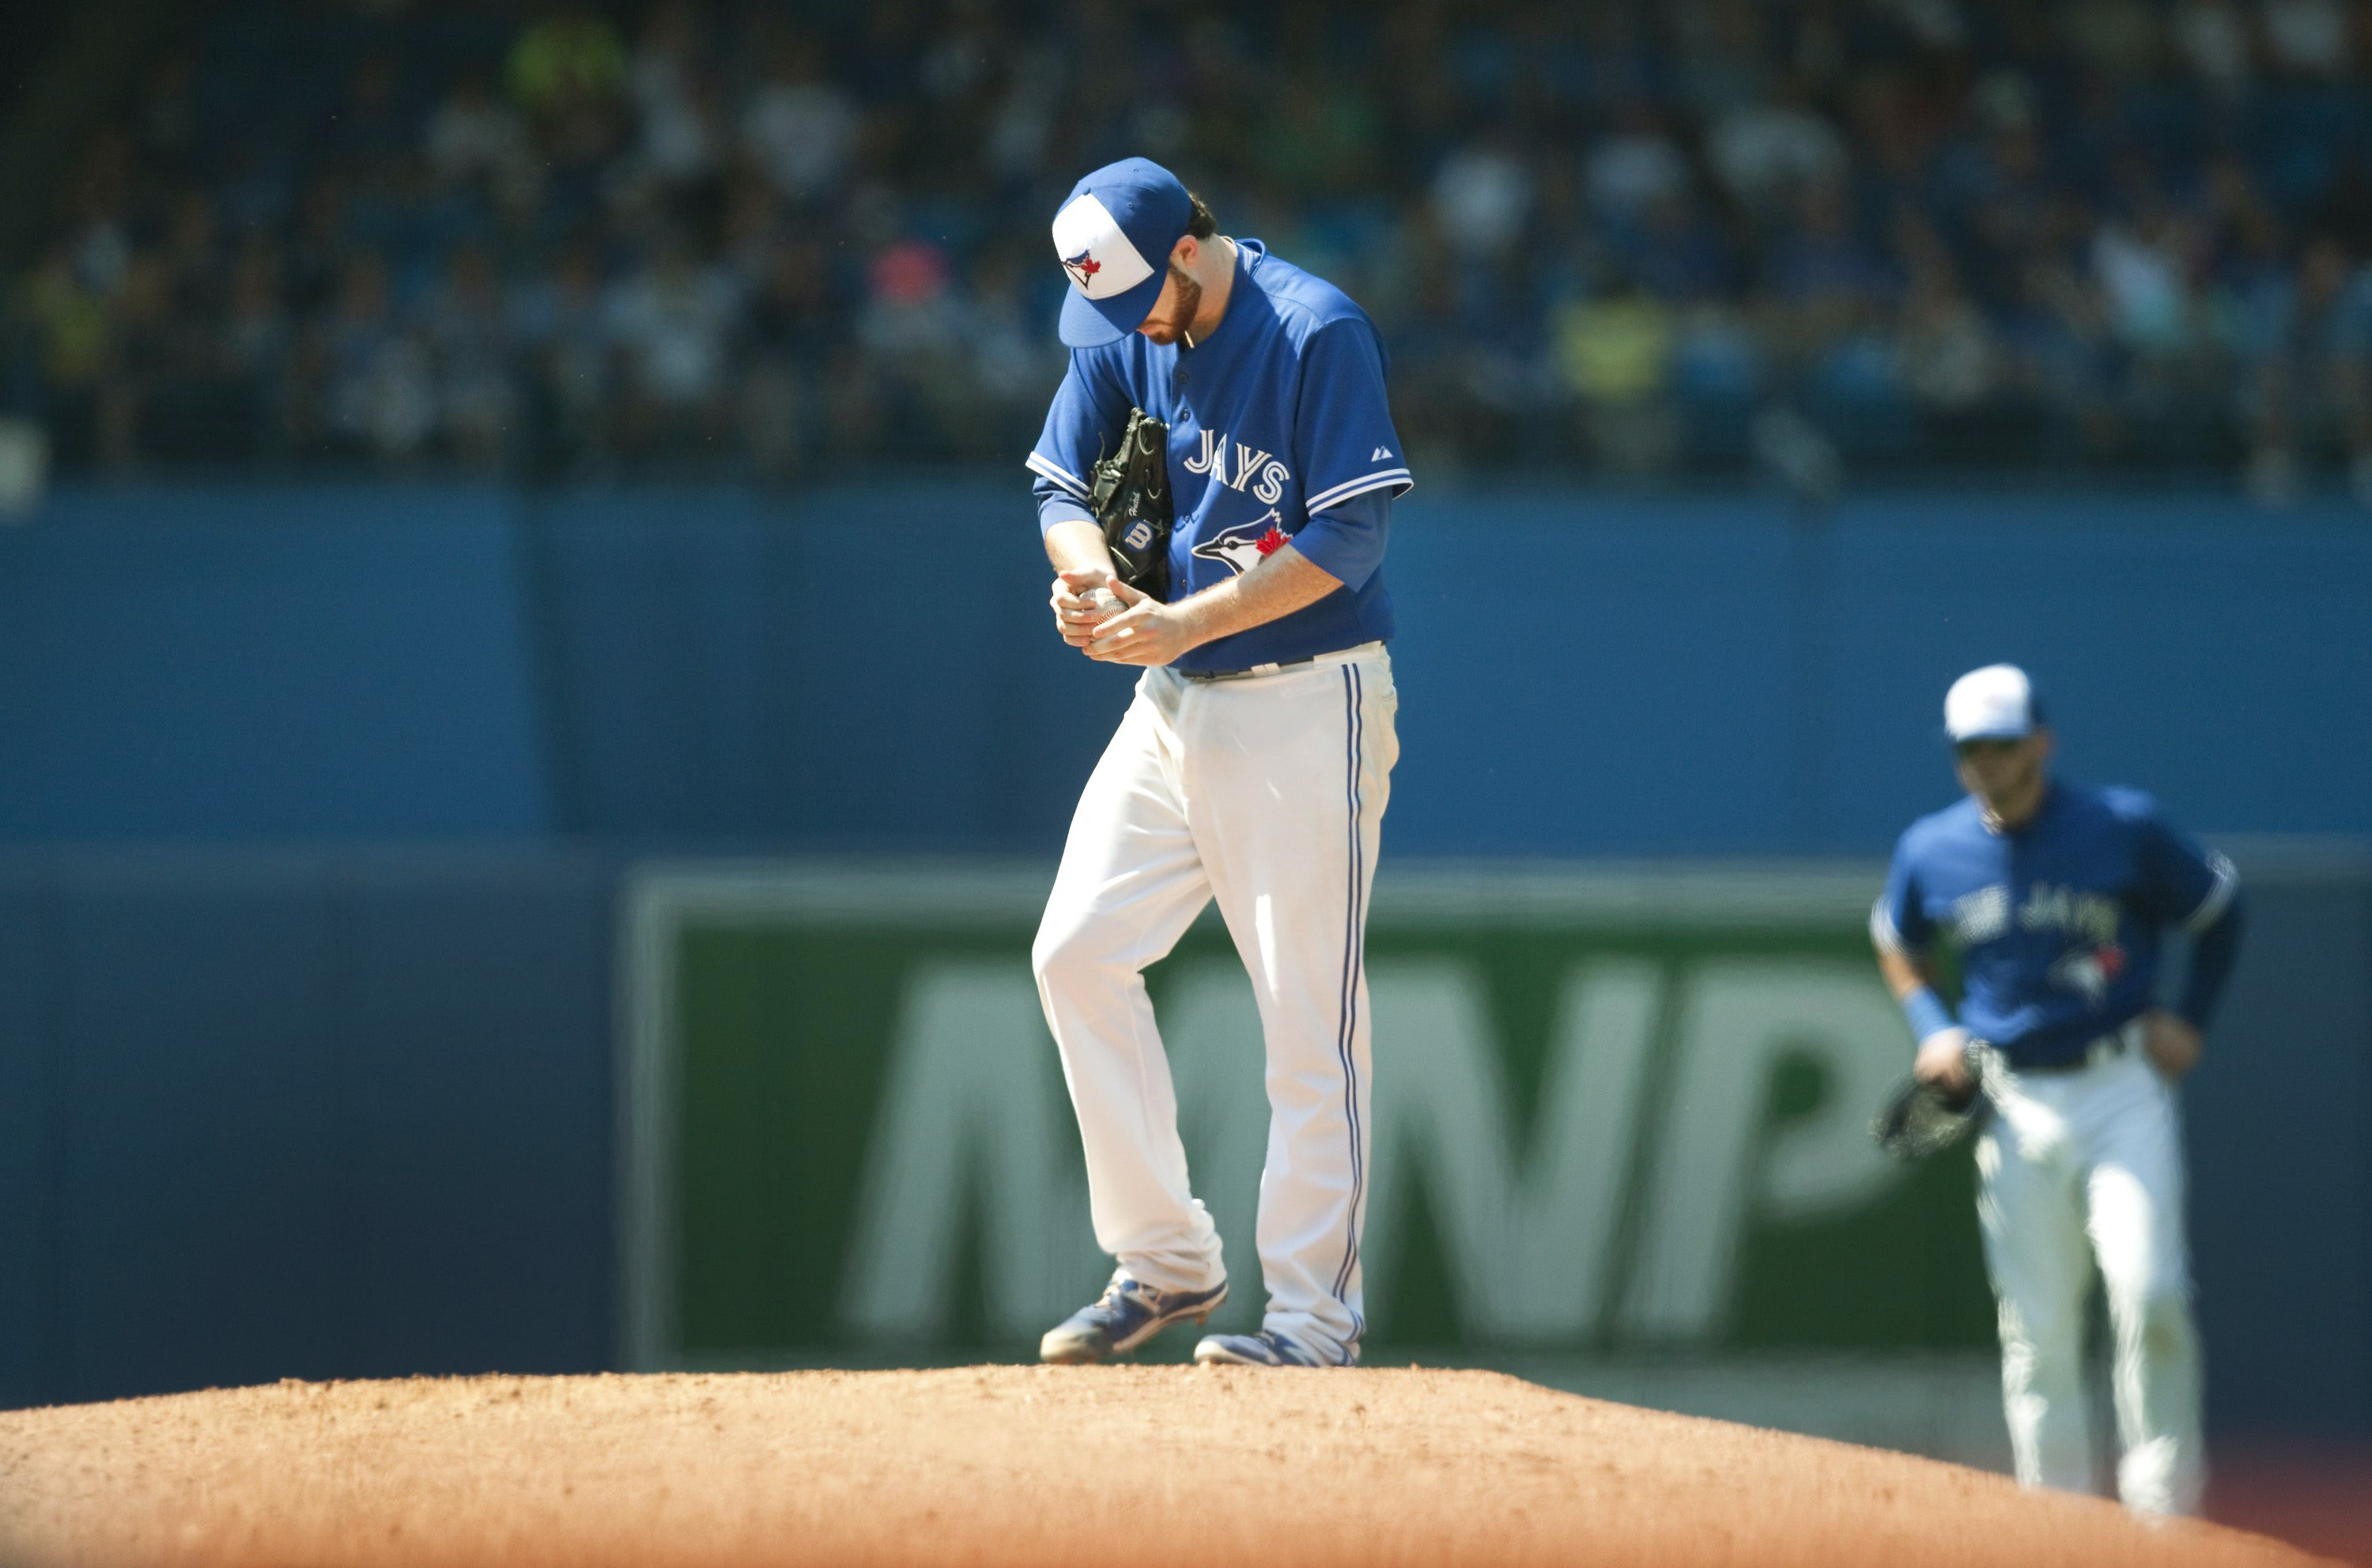 Toronto Blue Jays starting pitcher Drew Hutchison pauses on the mound before throwing against the New York Yankees during the sixth inning of a baseball game in Toronto on Sunday, Aug. 16, 2015. (Fred Thornhill /The Canadian Press via AP) MANDATORY CREDIT